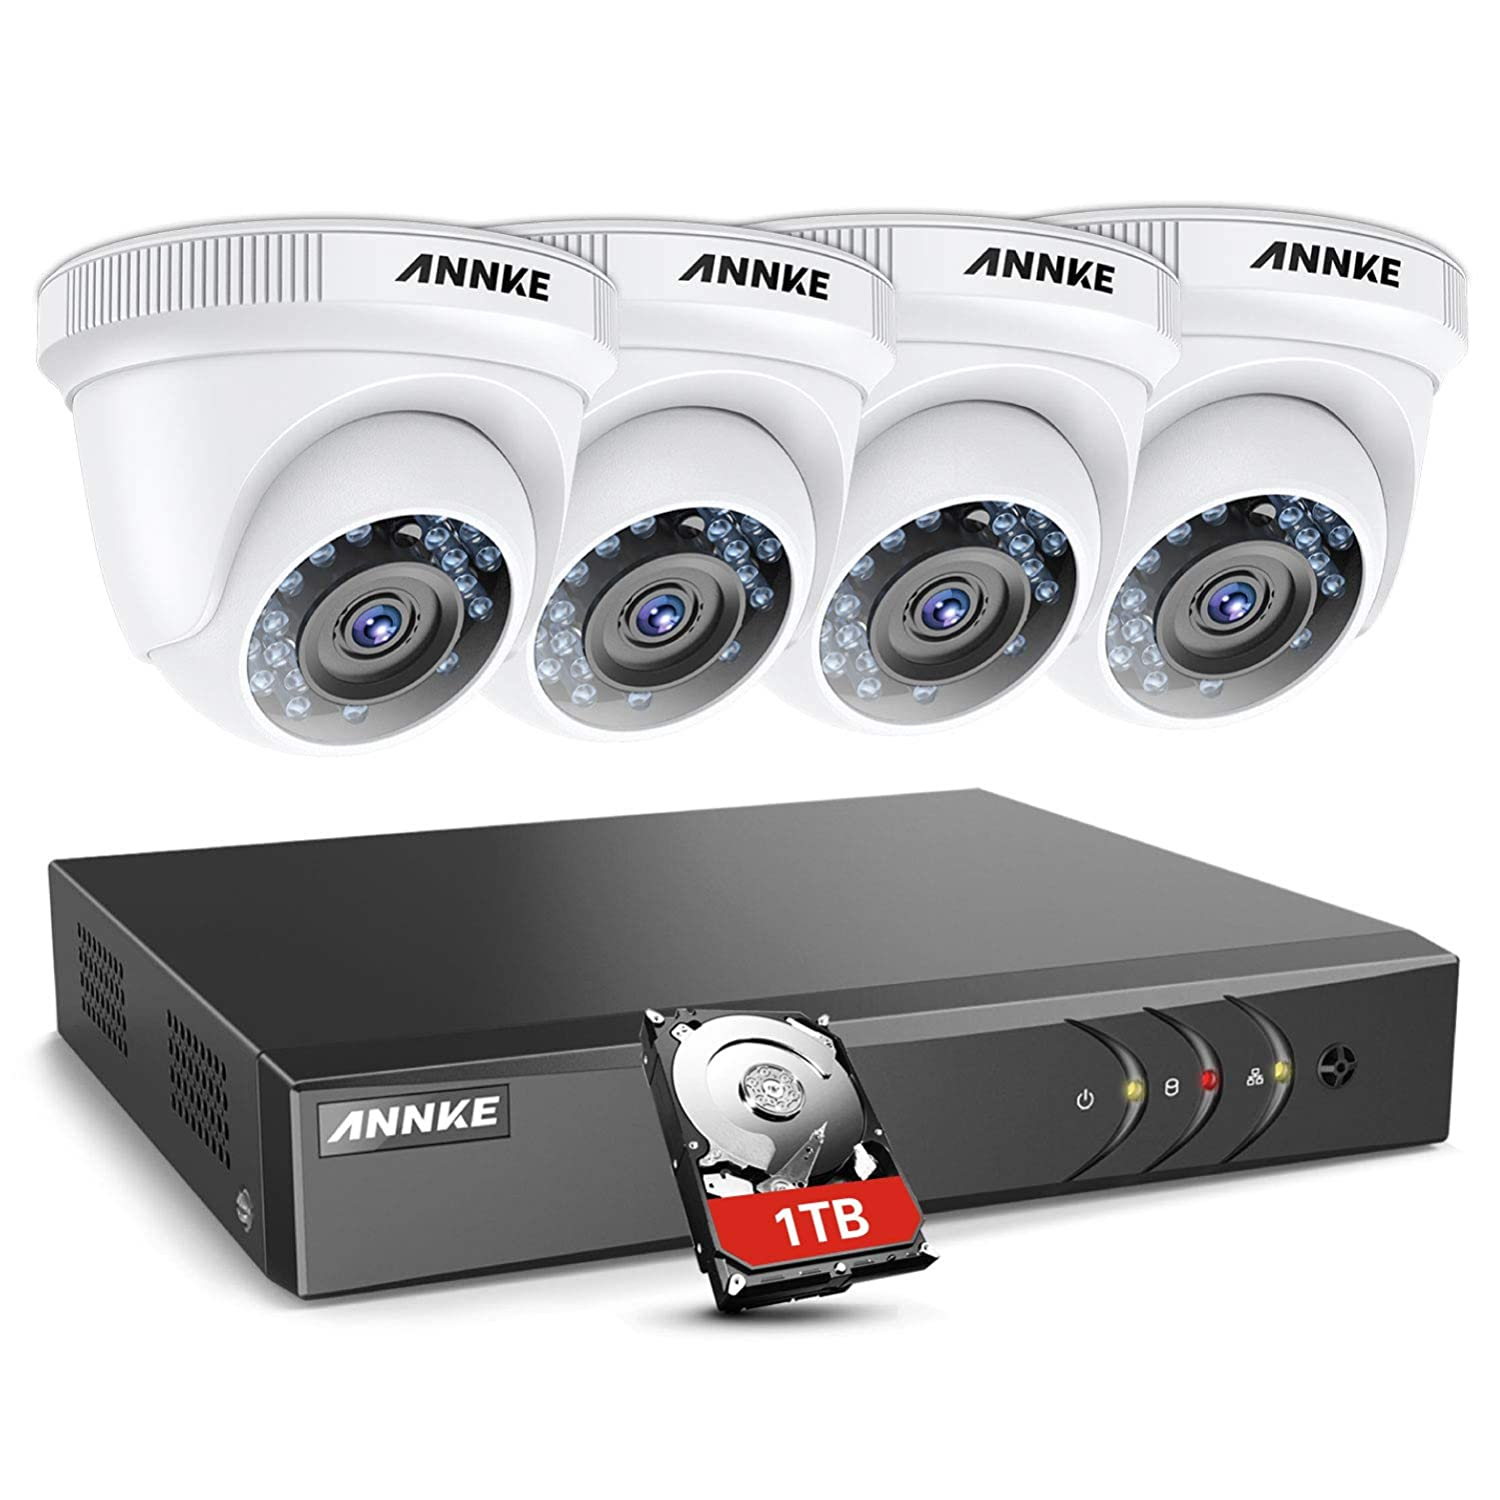 ANNKE Full HD 1080p Outdoor Security Camera System H 264+ HD-TVI DVR and  (4) 2MP 1920TVL Weatherproof Bullet Cameras, 100ft Night Vision, 1TB DVR